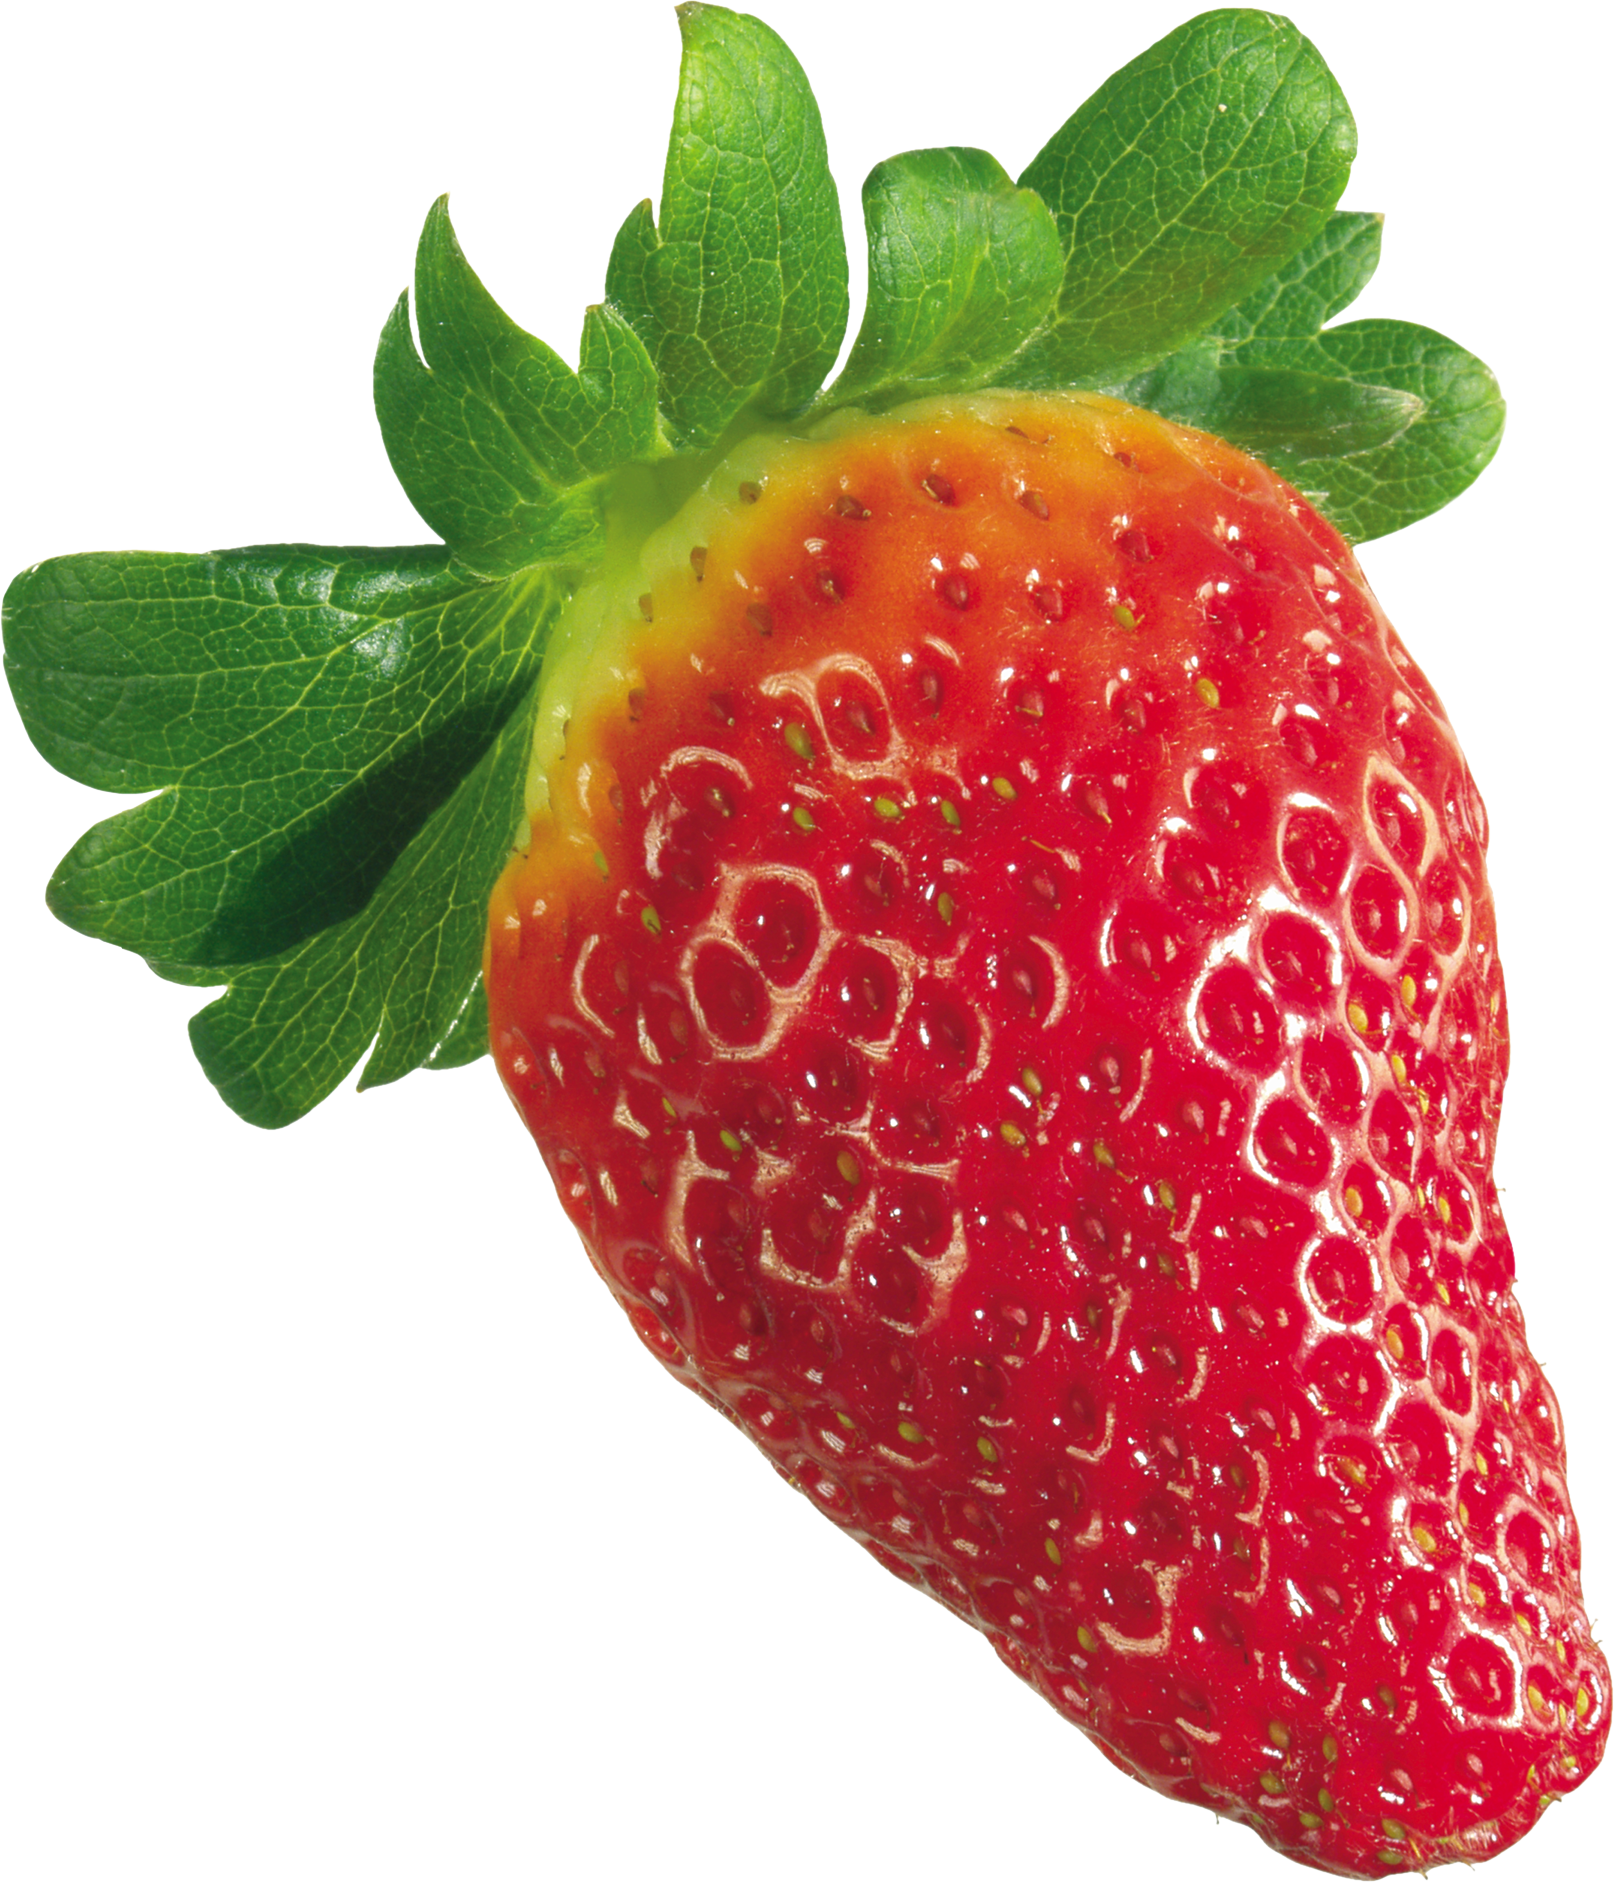 Heart shaped strawberry clipart picture royalty free Strawberry Transparent PNG Pictures - Free Icons and PNG Backgrounds picture royalty free